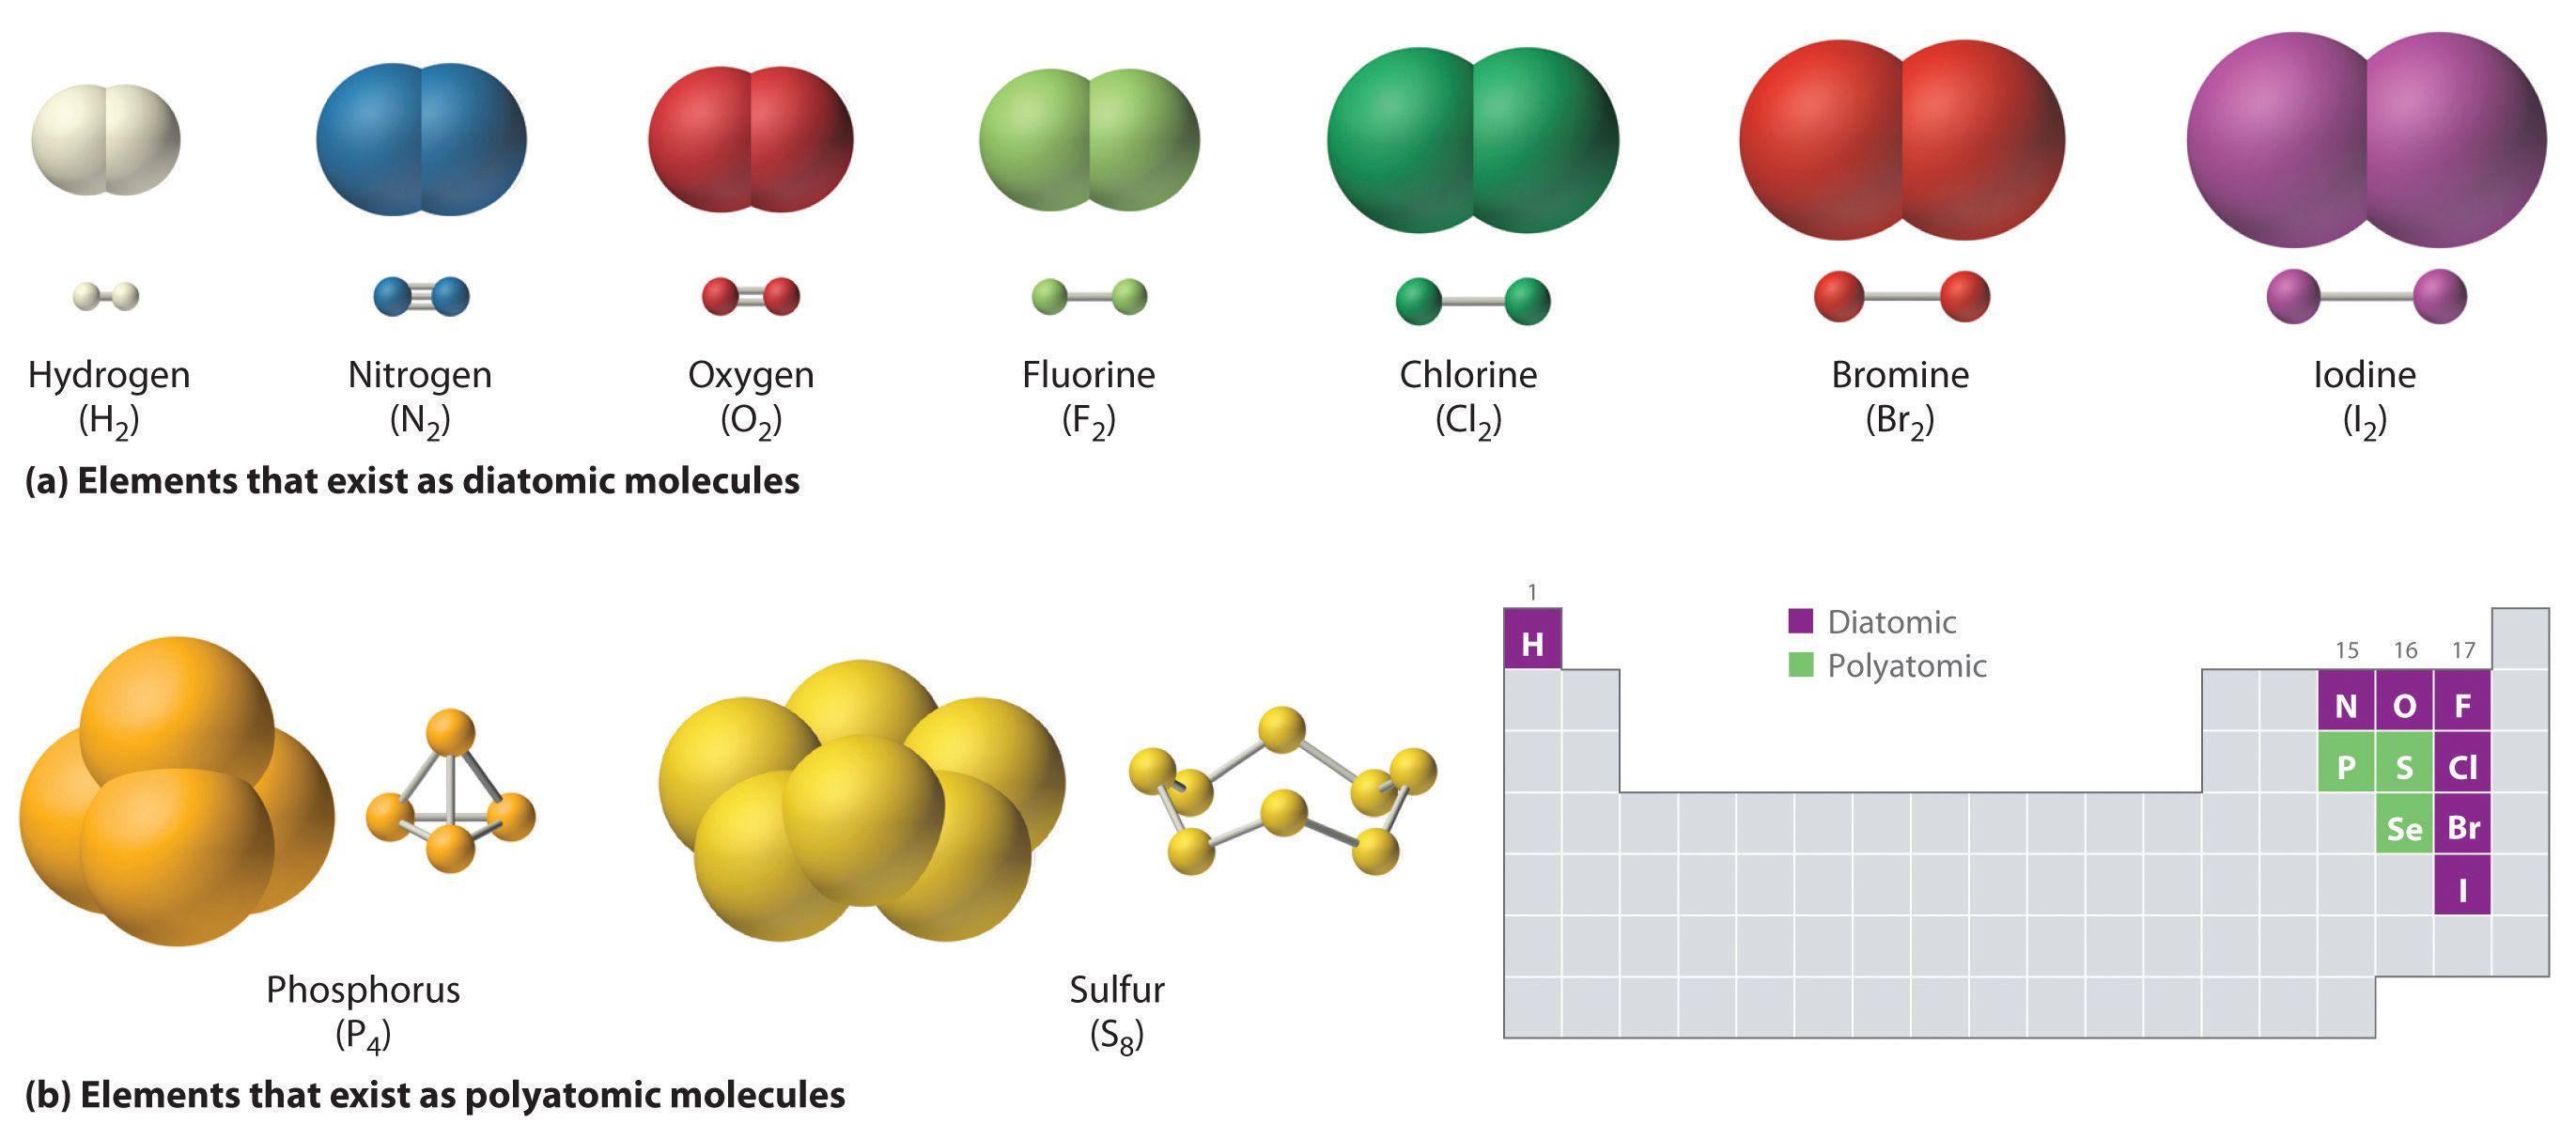 Elements that exist as covalent molecules stem physical molecules and molecular compounds chemistry libretexts gamestrikefo Image collections